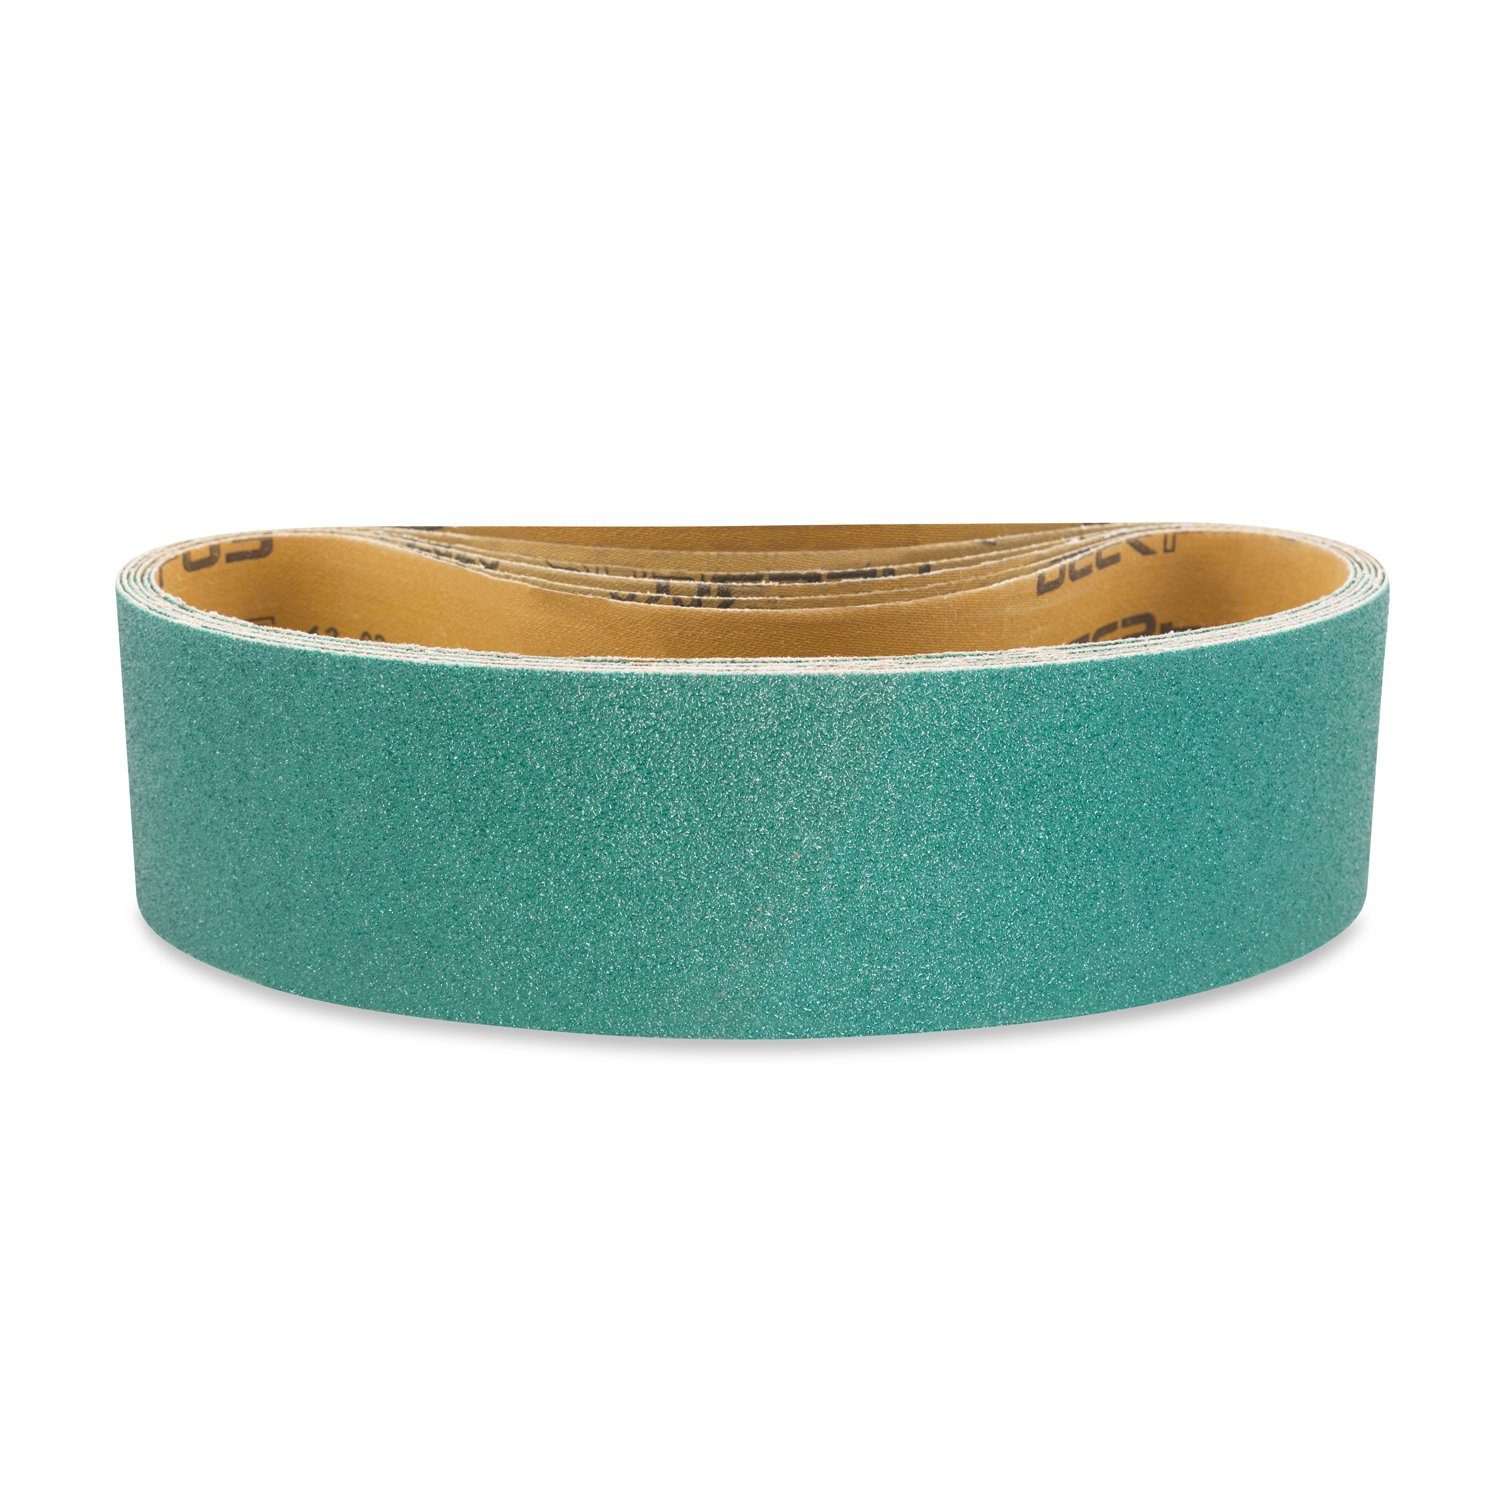 3 X 21 Inch 120 Grit Metal Grinding Zirconia Sanding Belts, 4 Pack by Red Label Abrasives